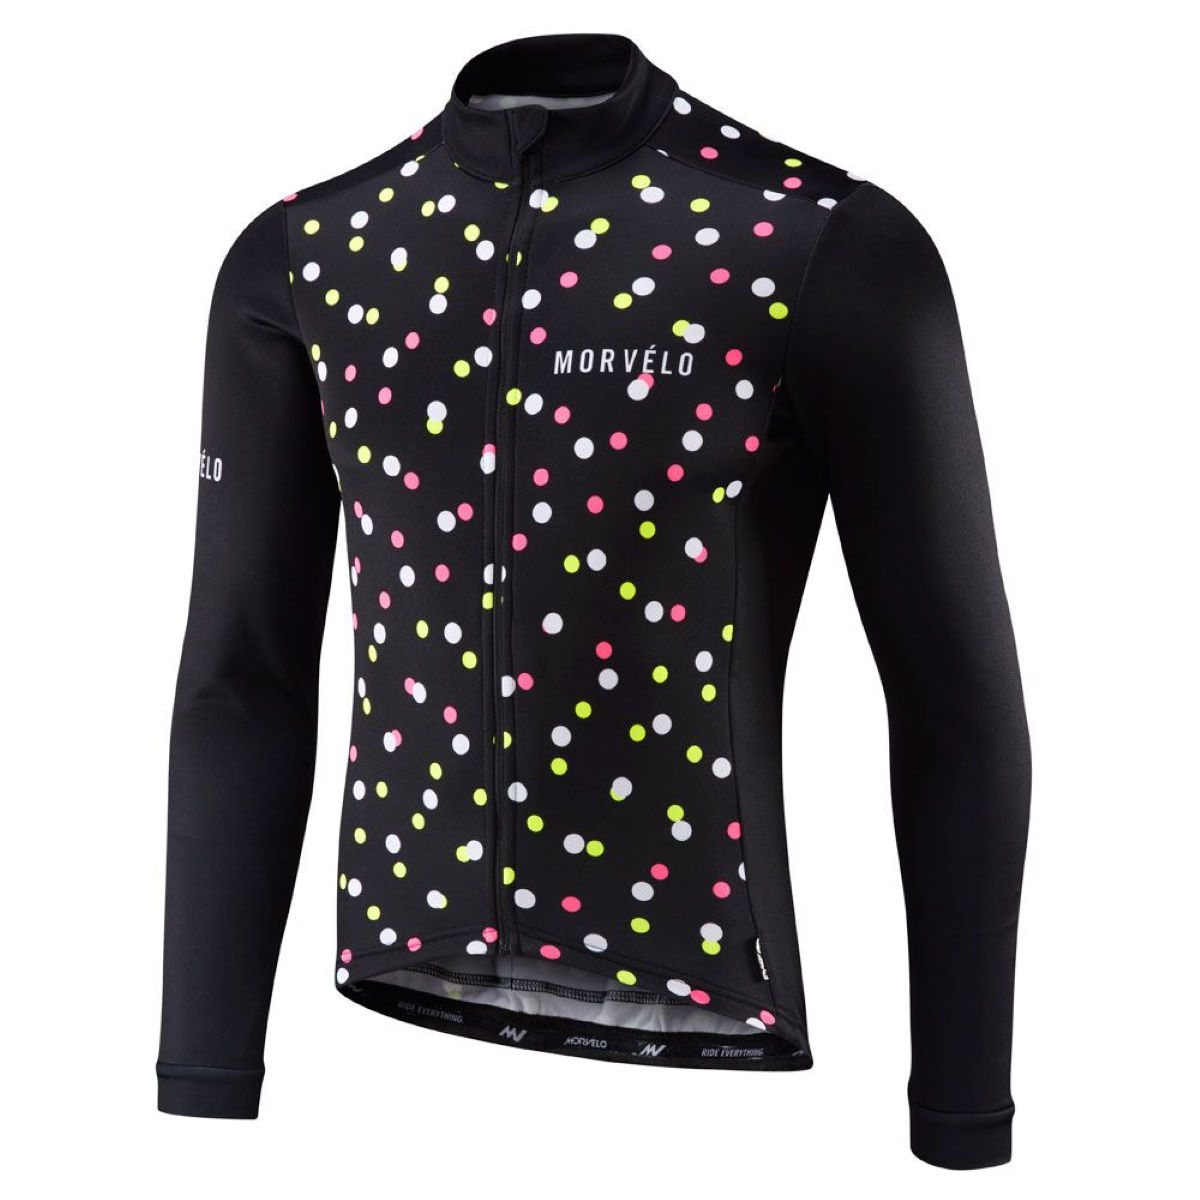 Maillot Morvelo Gumball Thermoactive (manches longues) - M Gumball